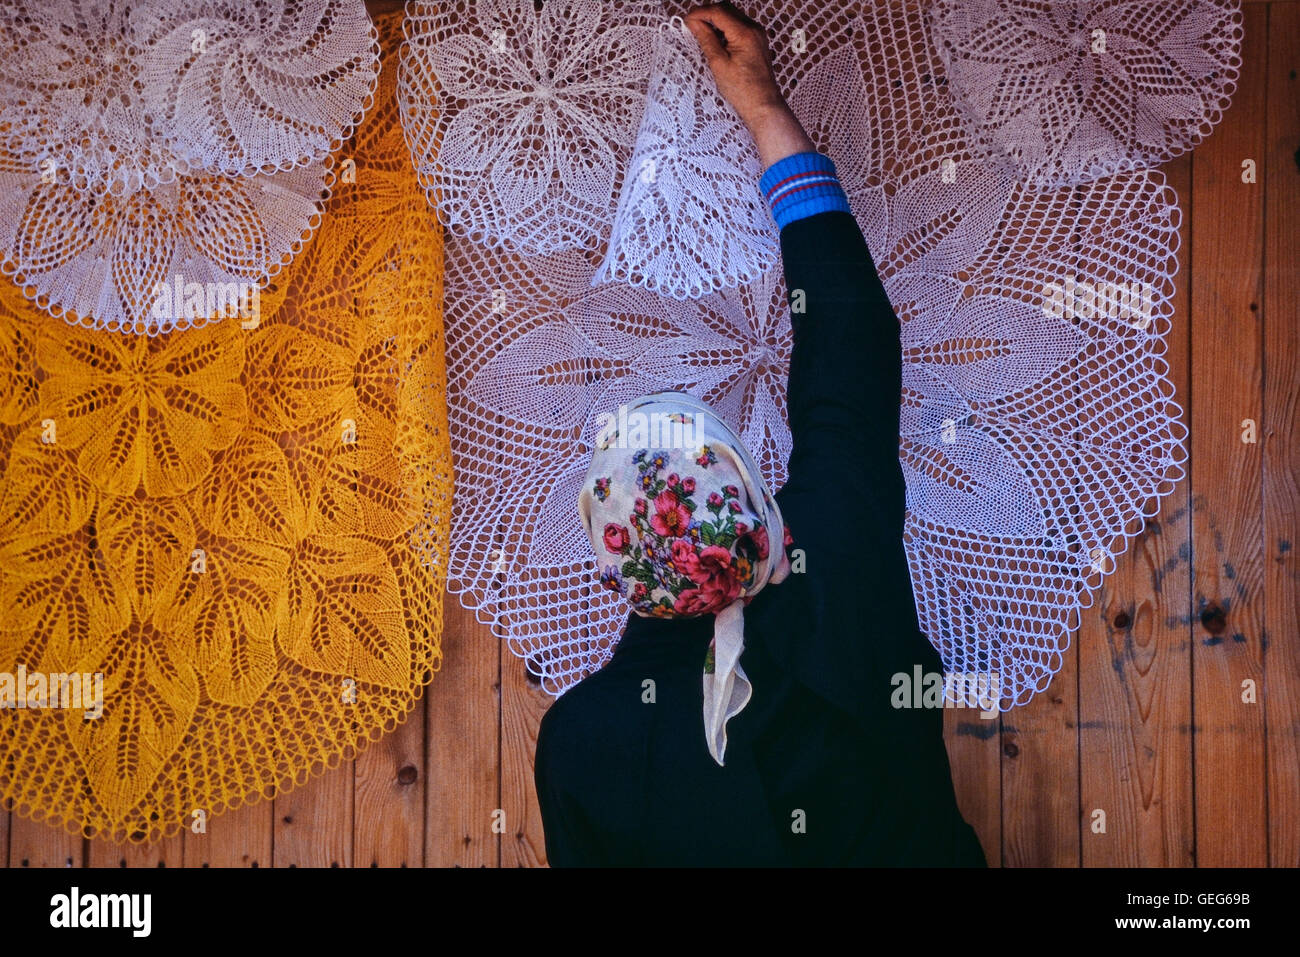 Stall holder hanging traditional lace tableclothes at the street market in Zakopane, Malopolskie Province, Poland - Stock Image